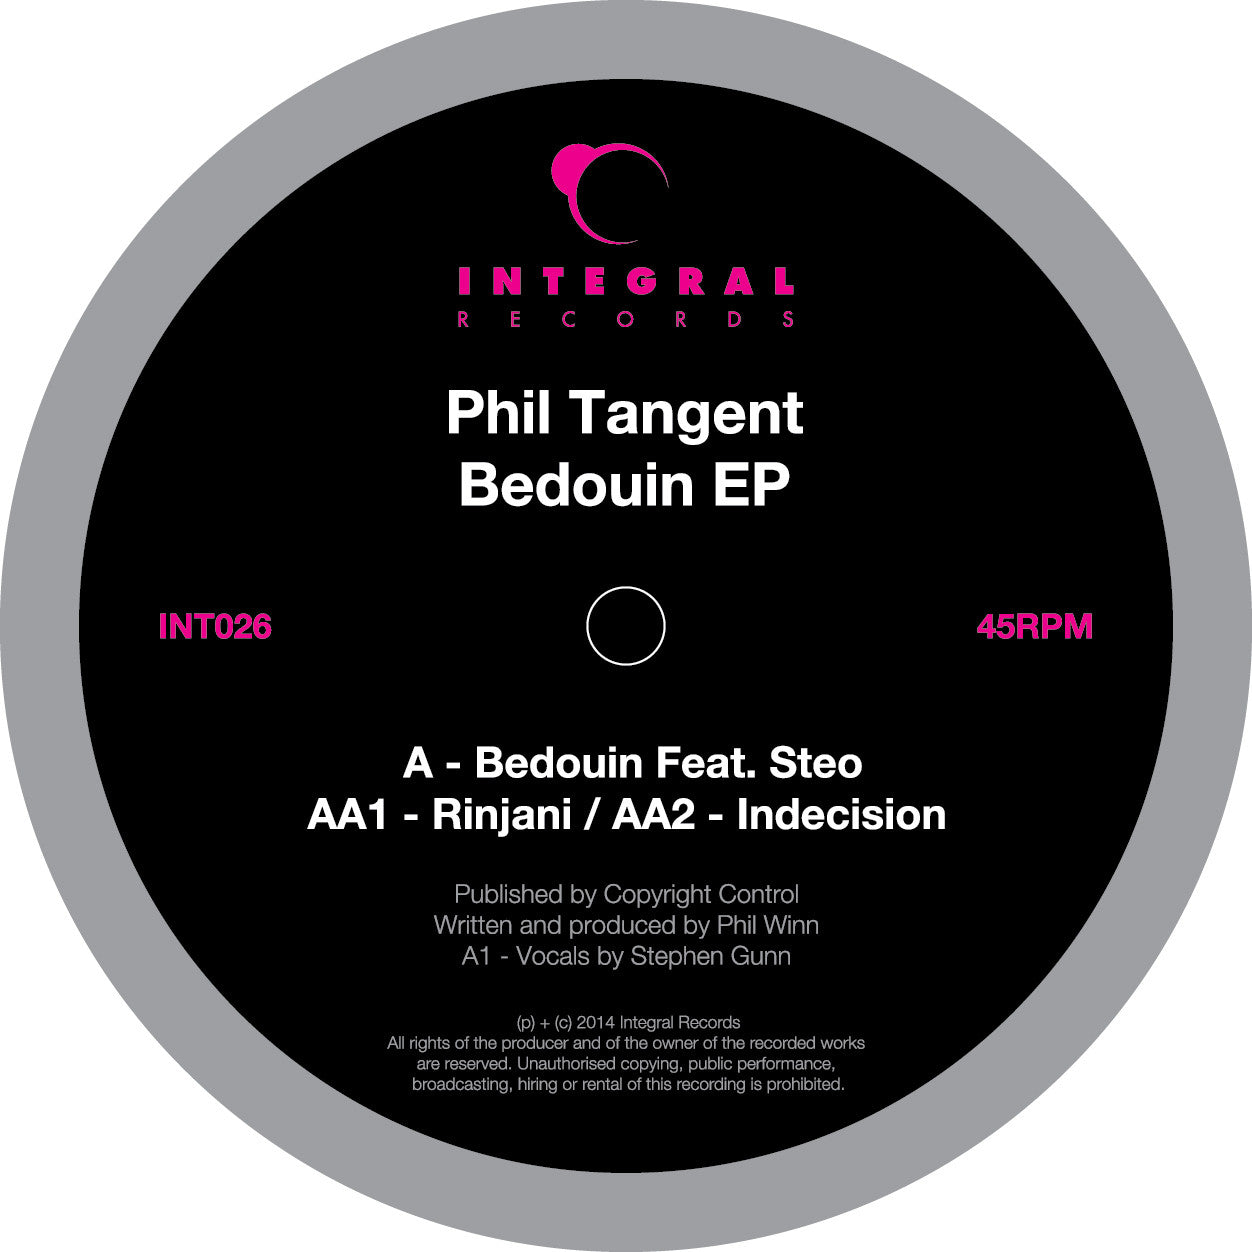 Phil Tangent - Bedouin EP - Unearthed Sounds